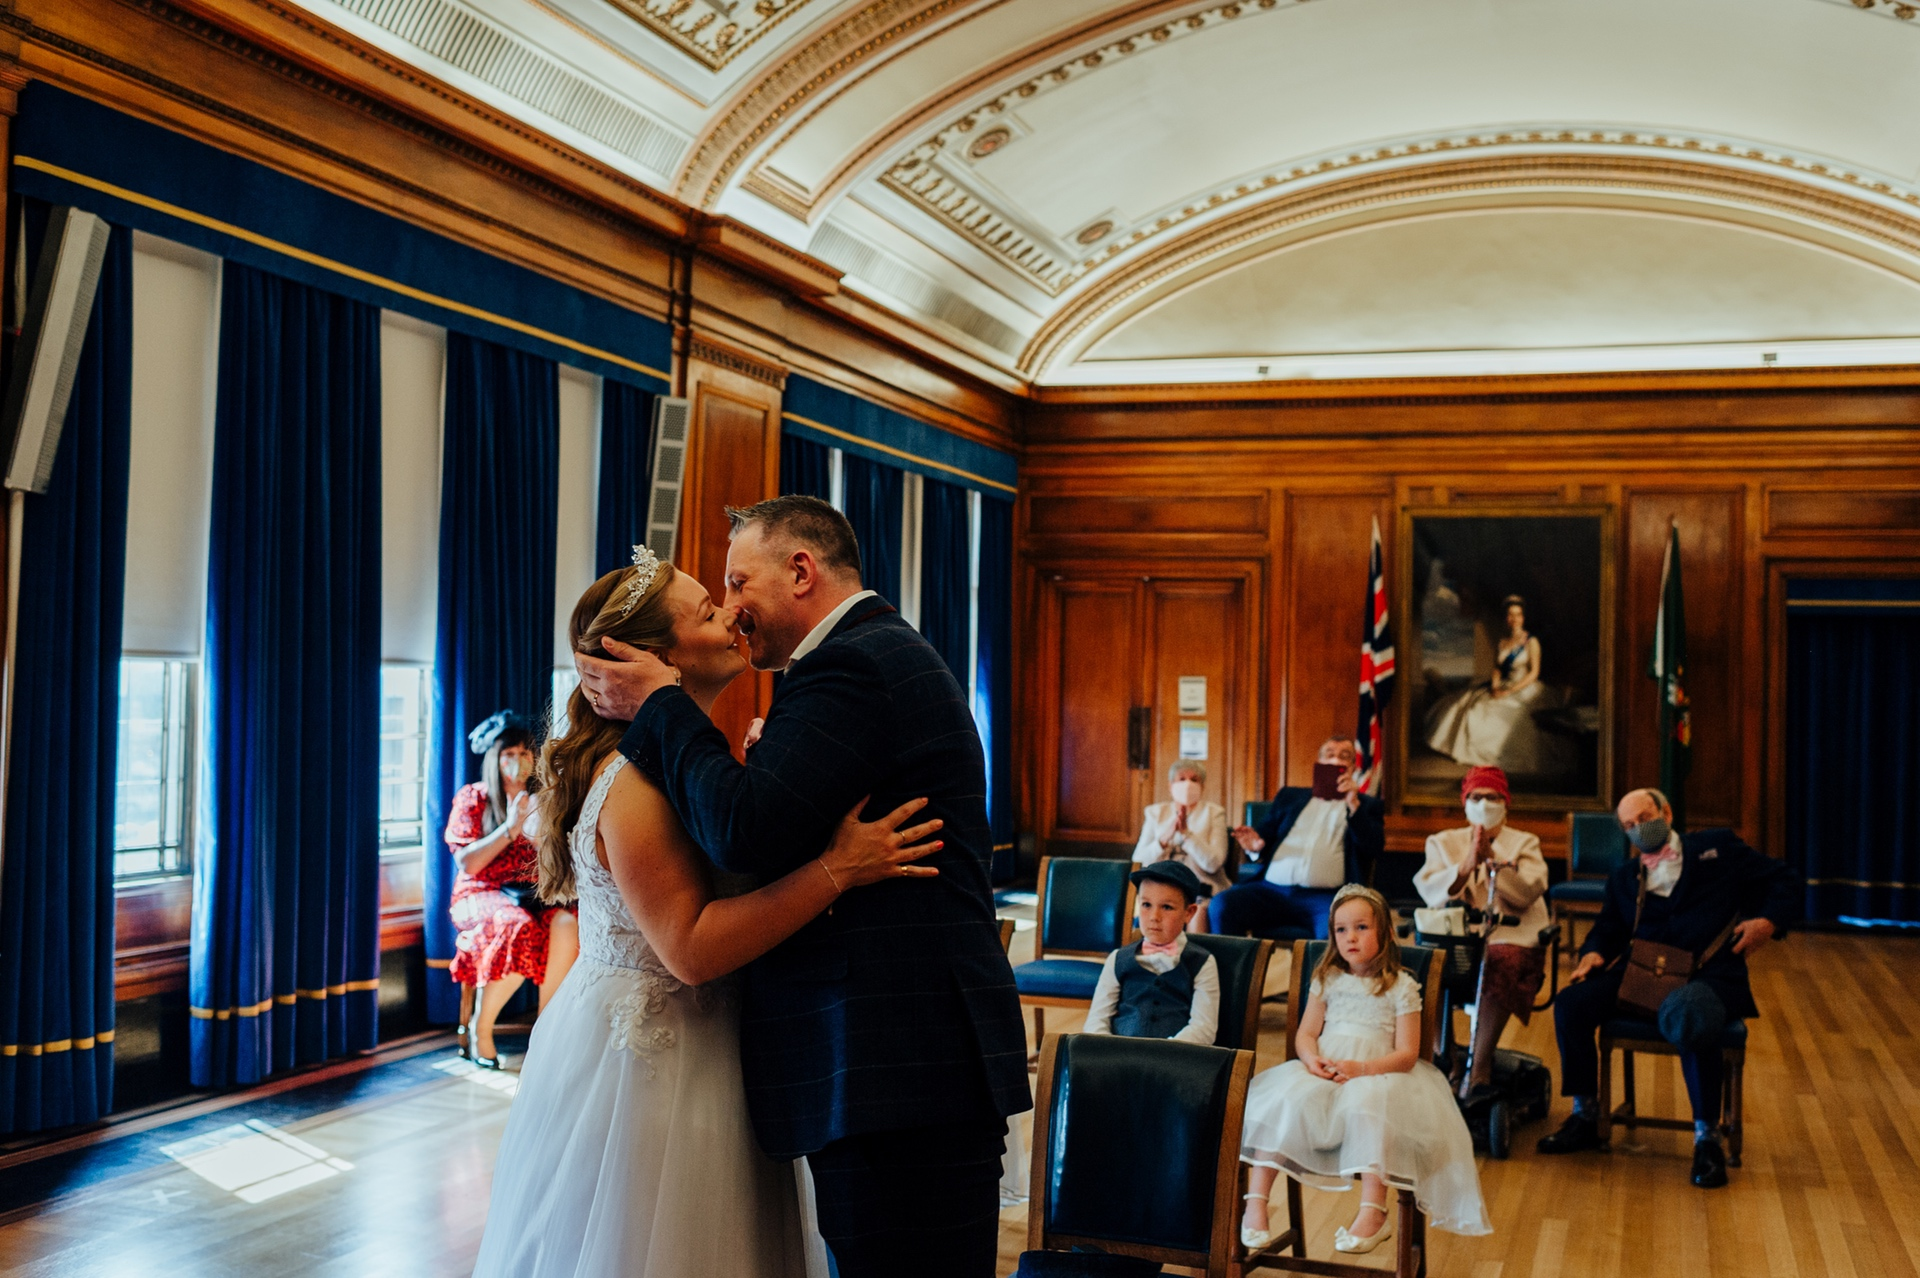 Nottingham City Council Wedding Ceremony Picture | The bride and groom share a tender kiss